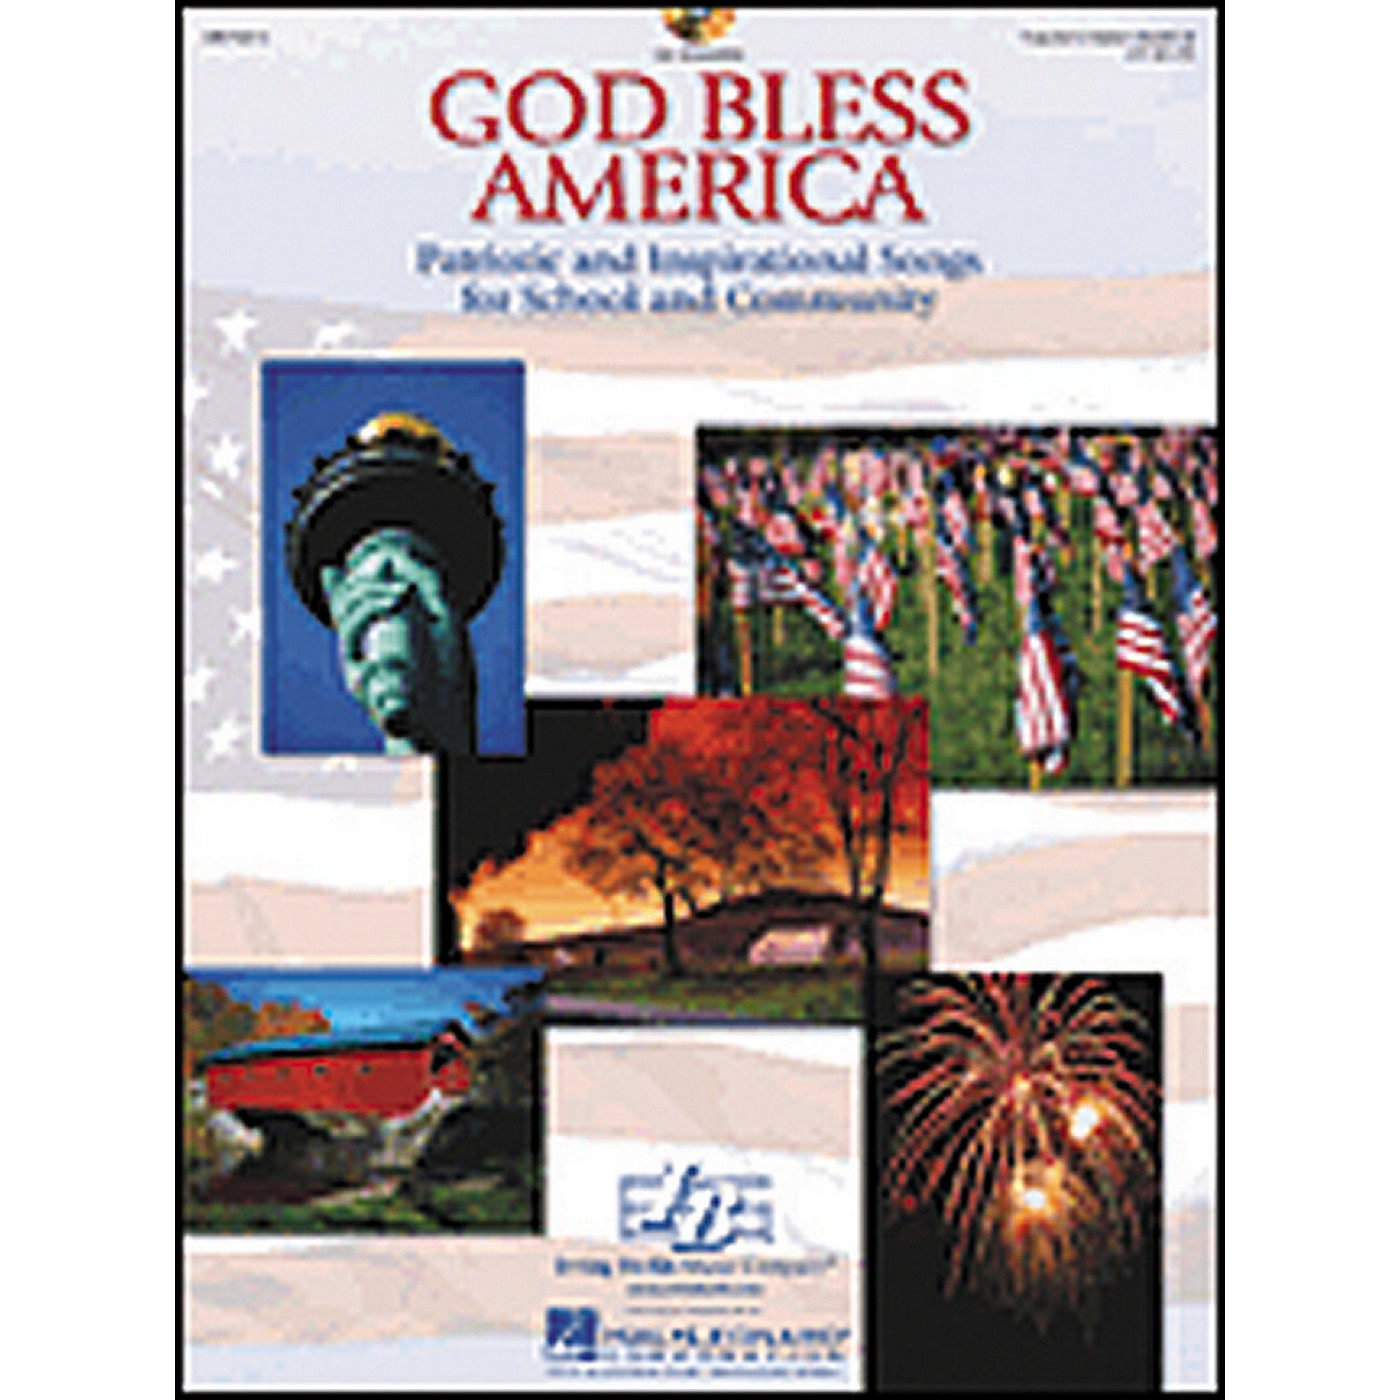 Hal Leonard God Bless America-Patriotic and Inspirational Songs for School CD thumbnail